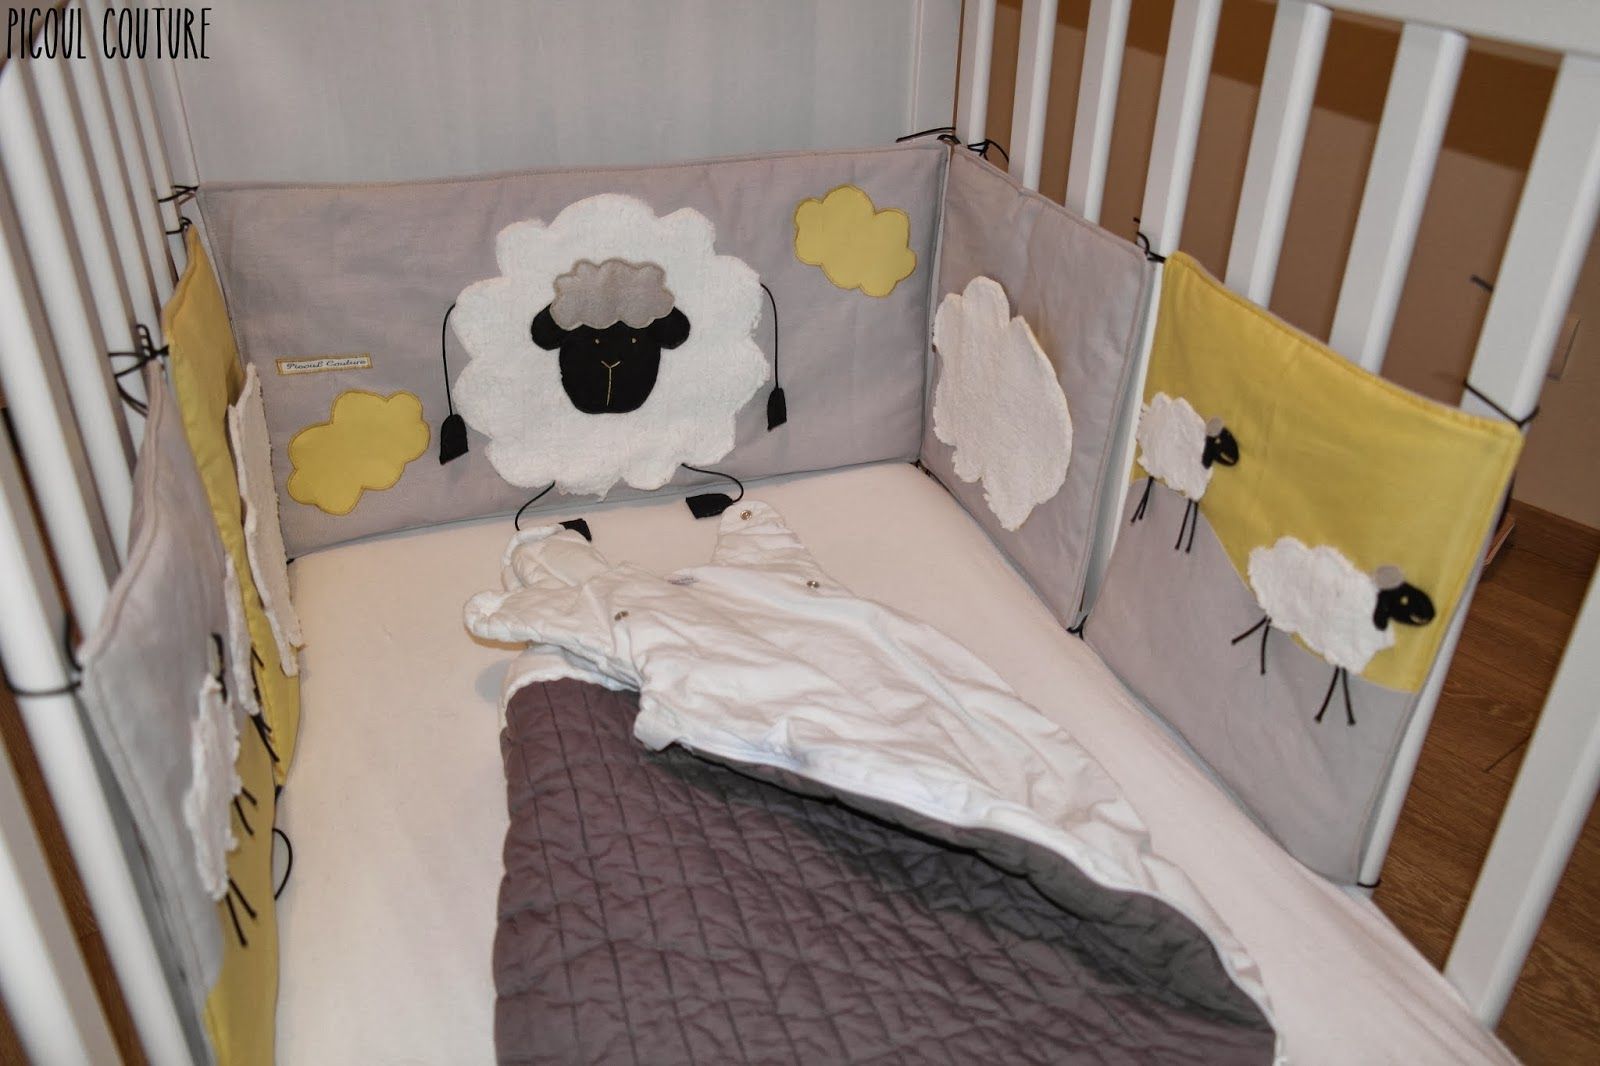 picoul couture le tour de lit sur le th me moutons et nuages. Black Bedroom Furniture Sets. Home Design Ideas